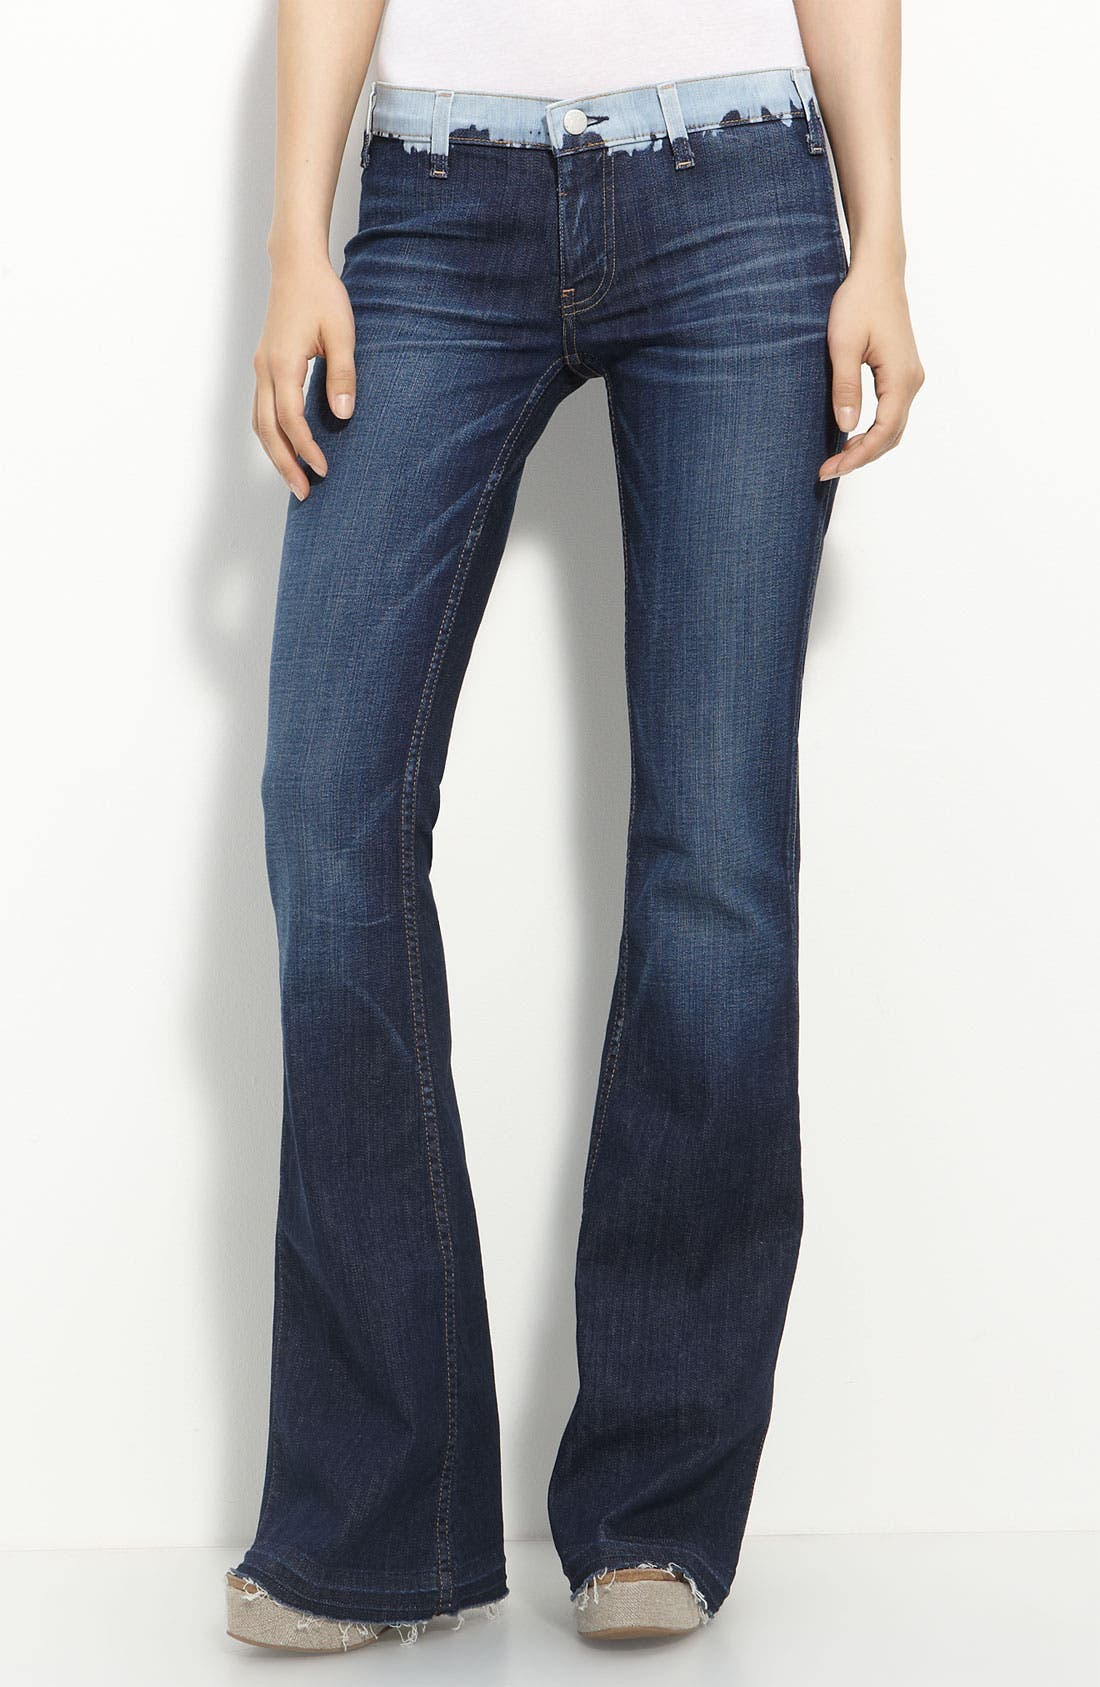 Alternate Image 1 Selected - TEXTILE Elizabeth and James Flare Leg Stretch Jeans